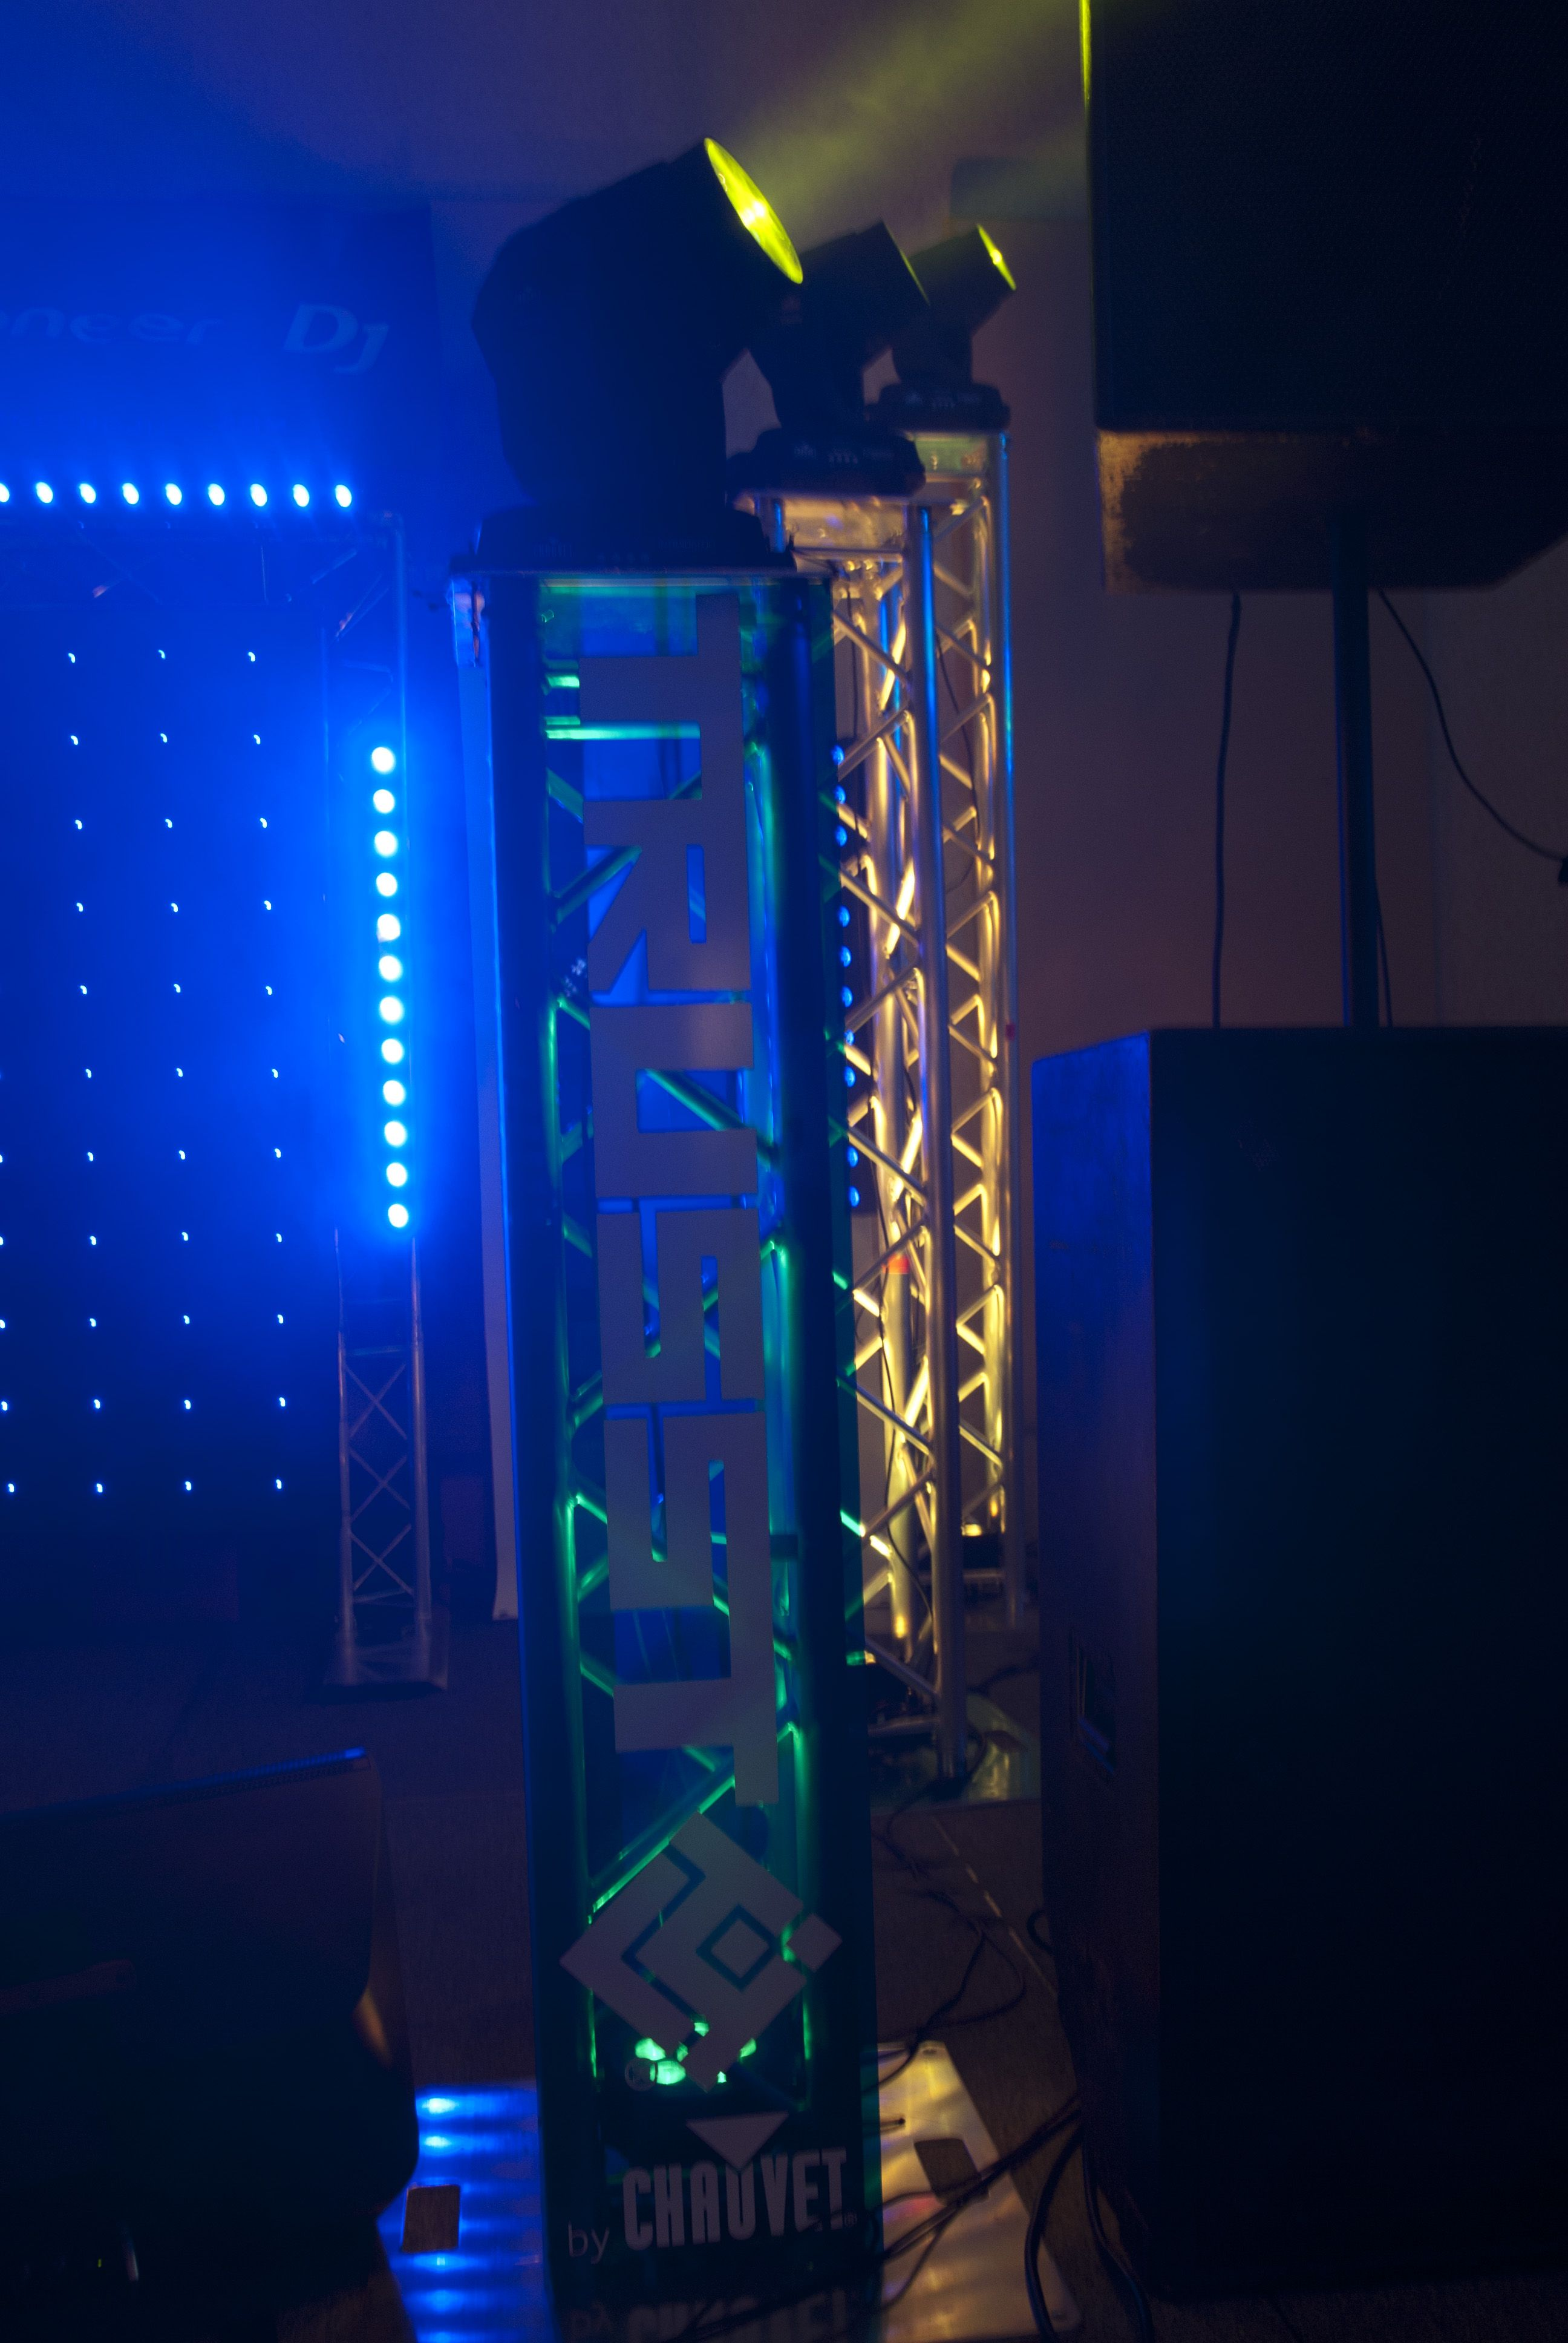 irc sound lighting intimidator chauvet simply dj and spot